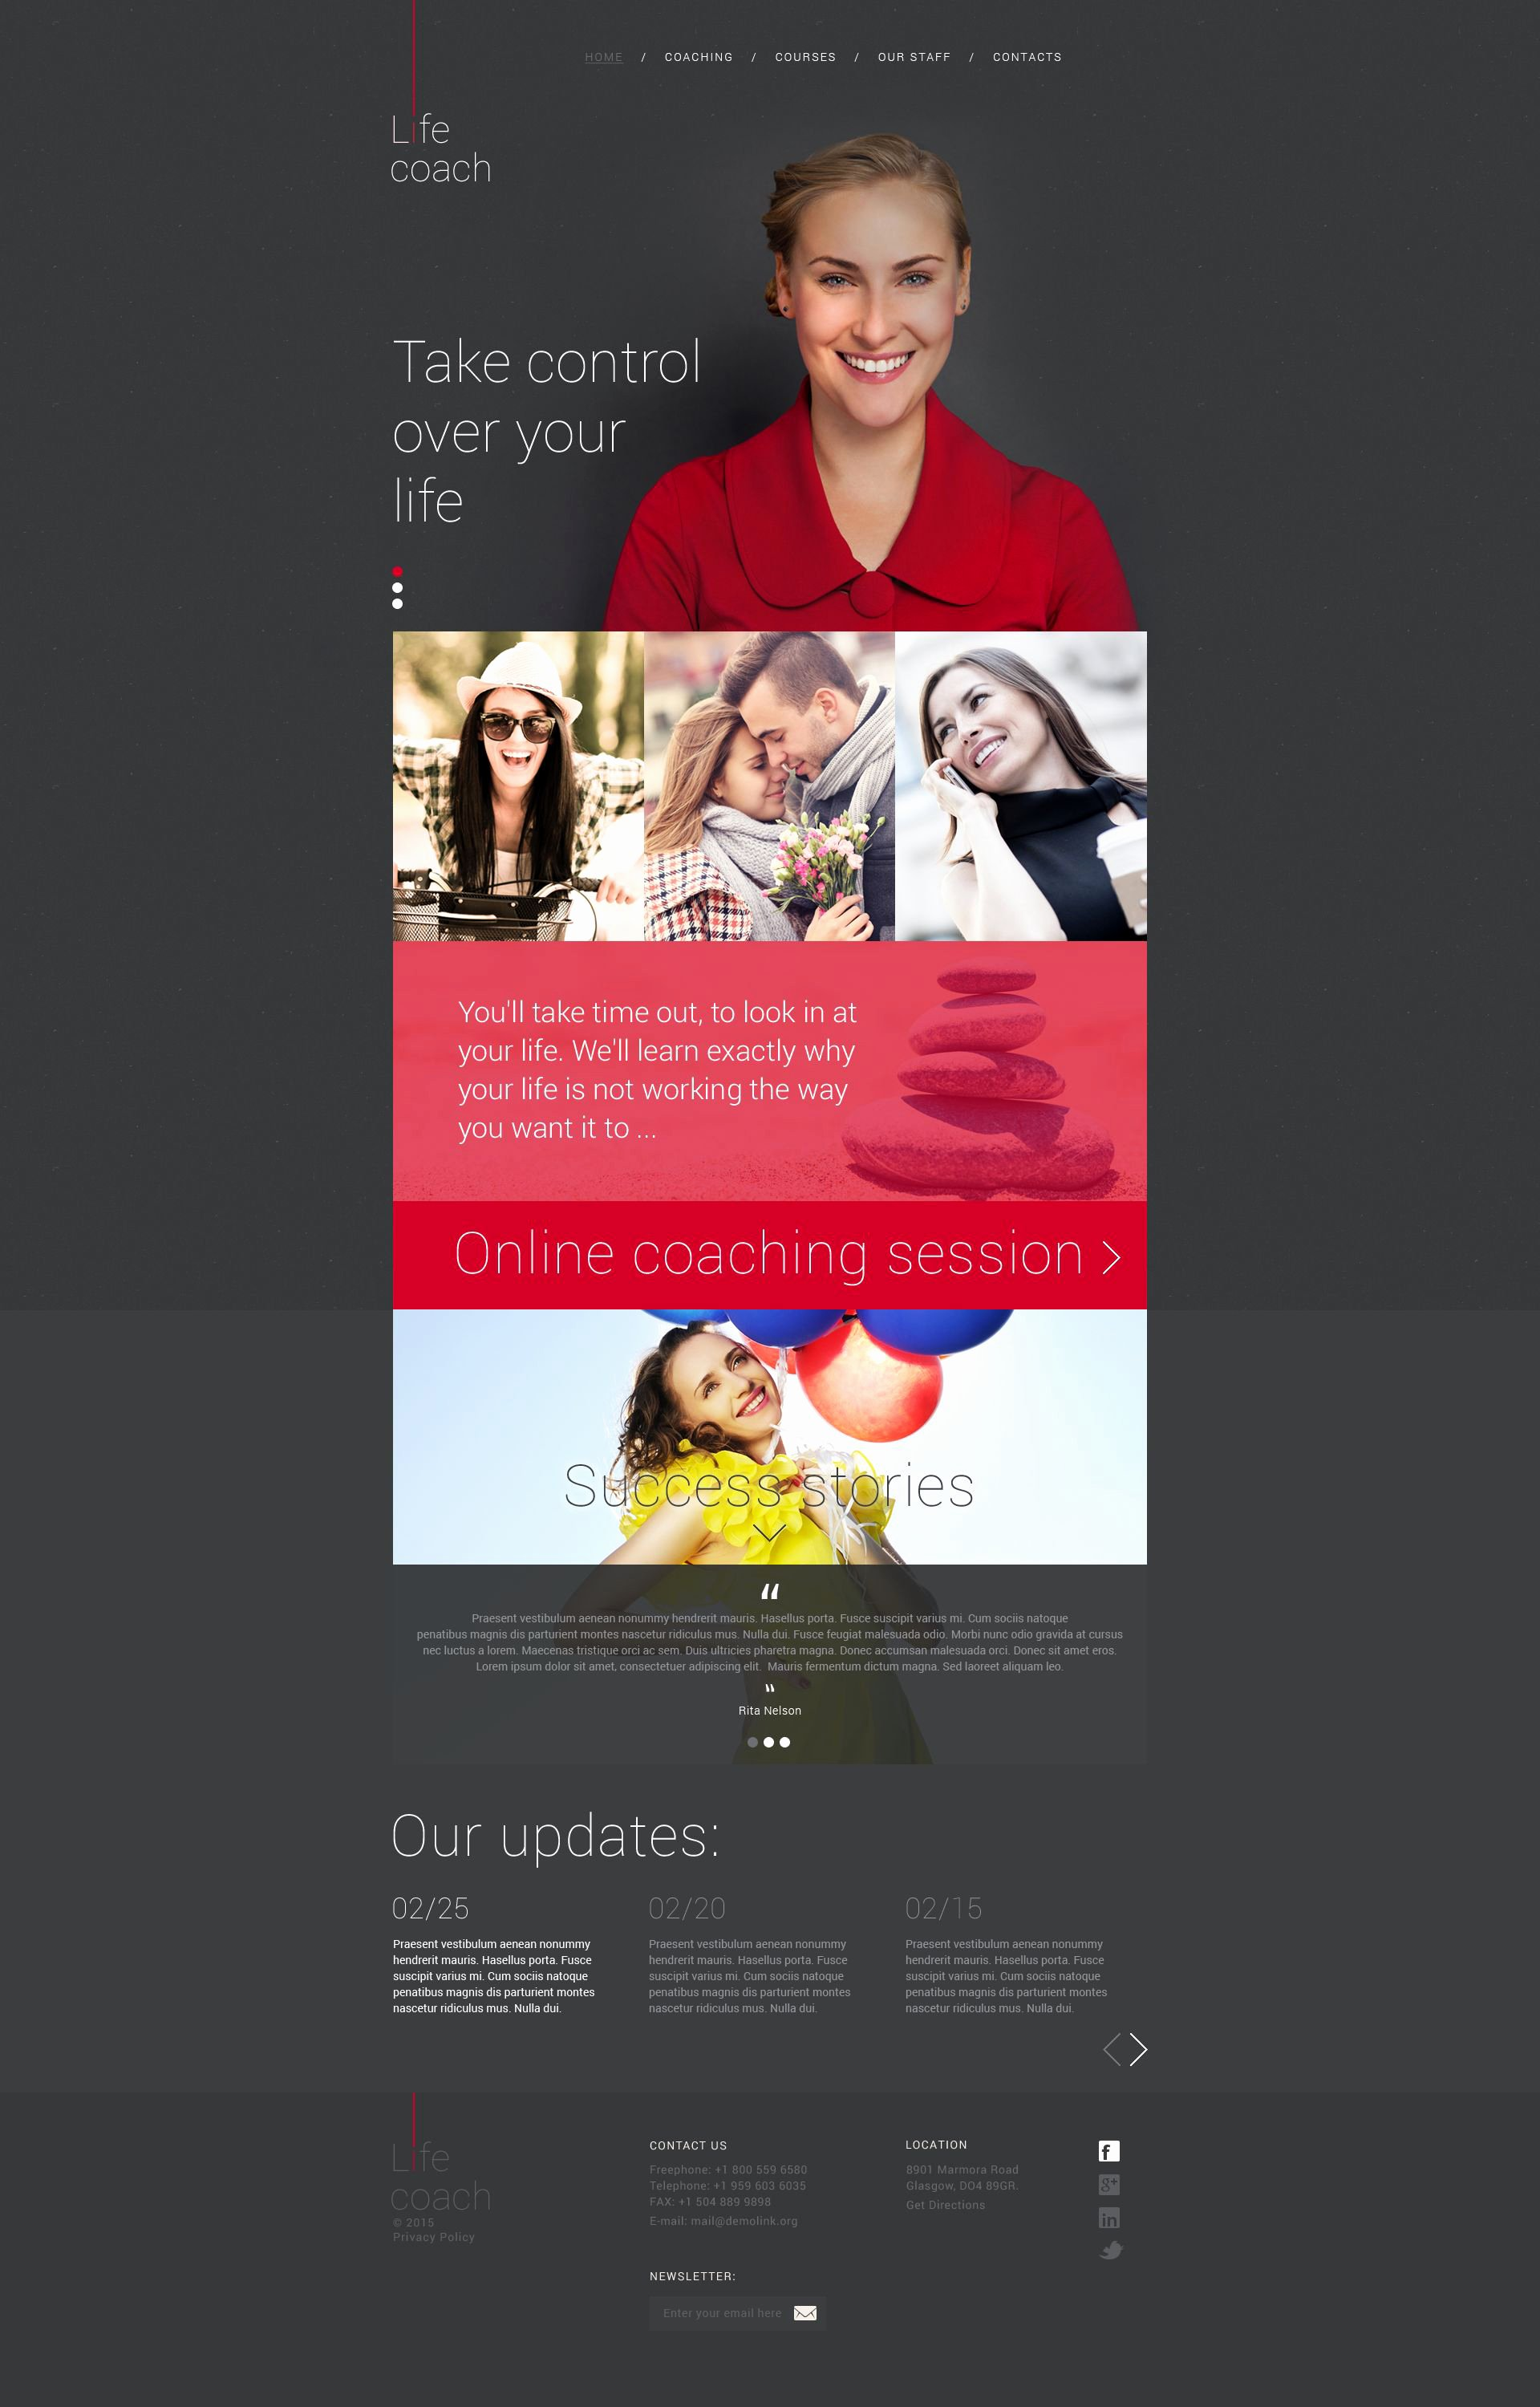 Life Coach Website Template Beautiful Life Coach Website Template